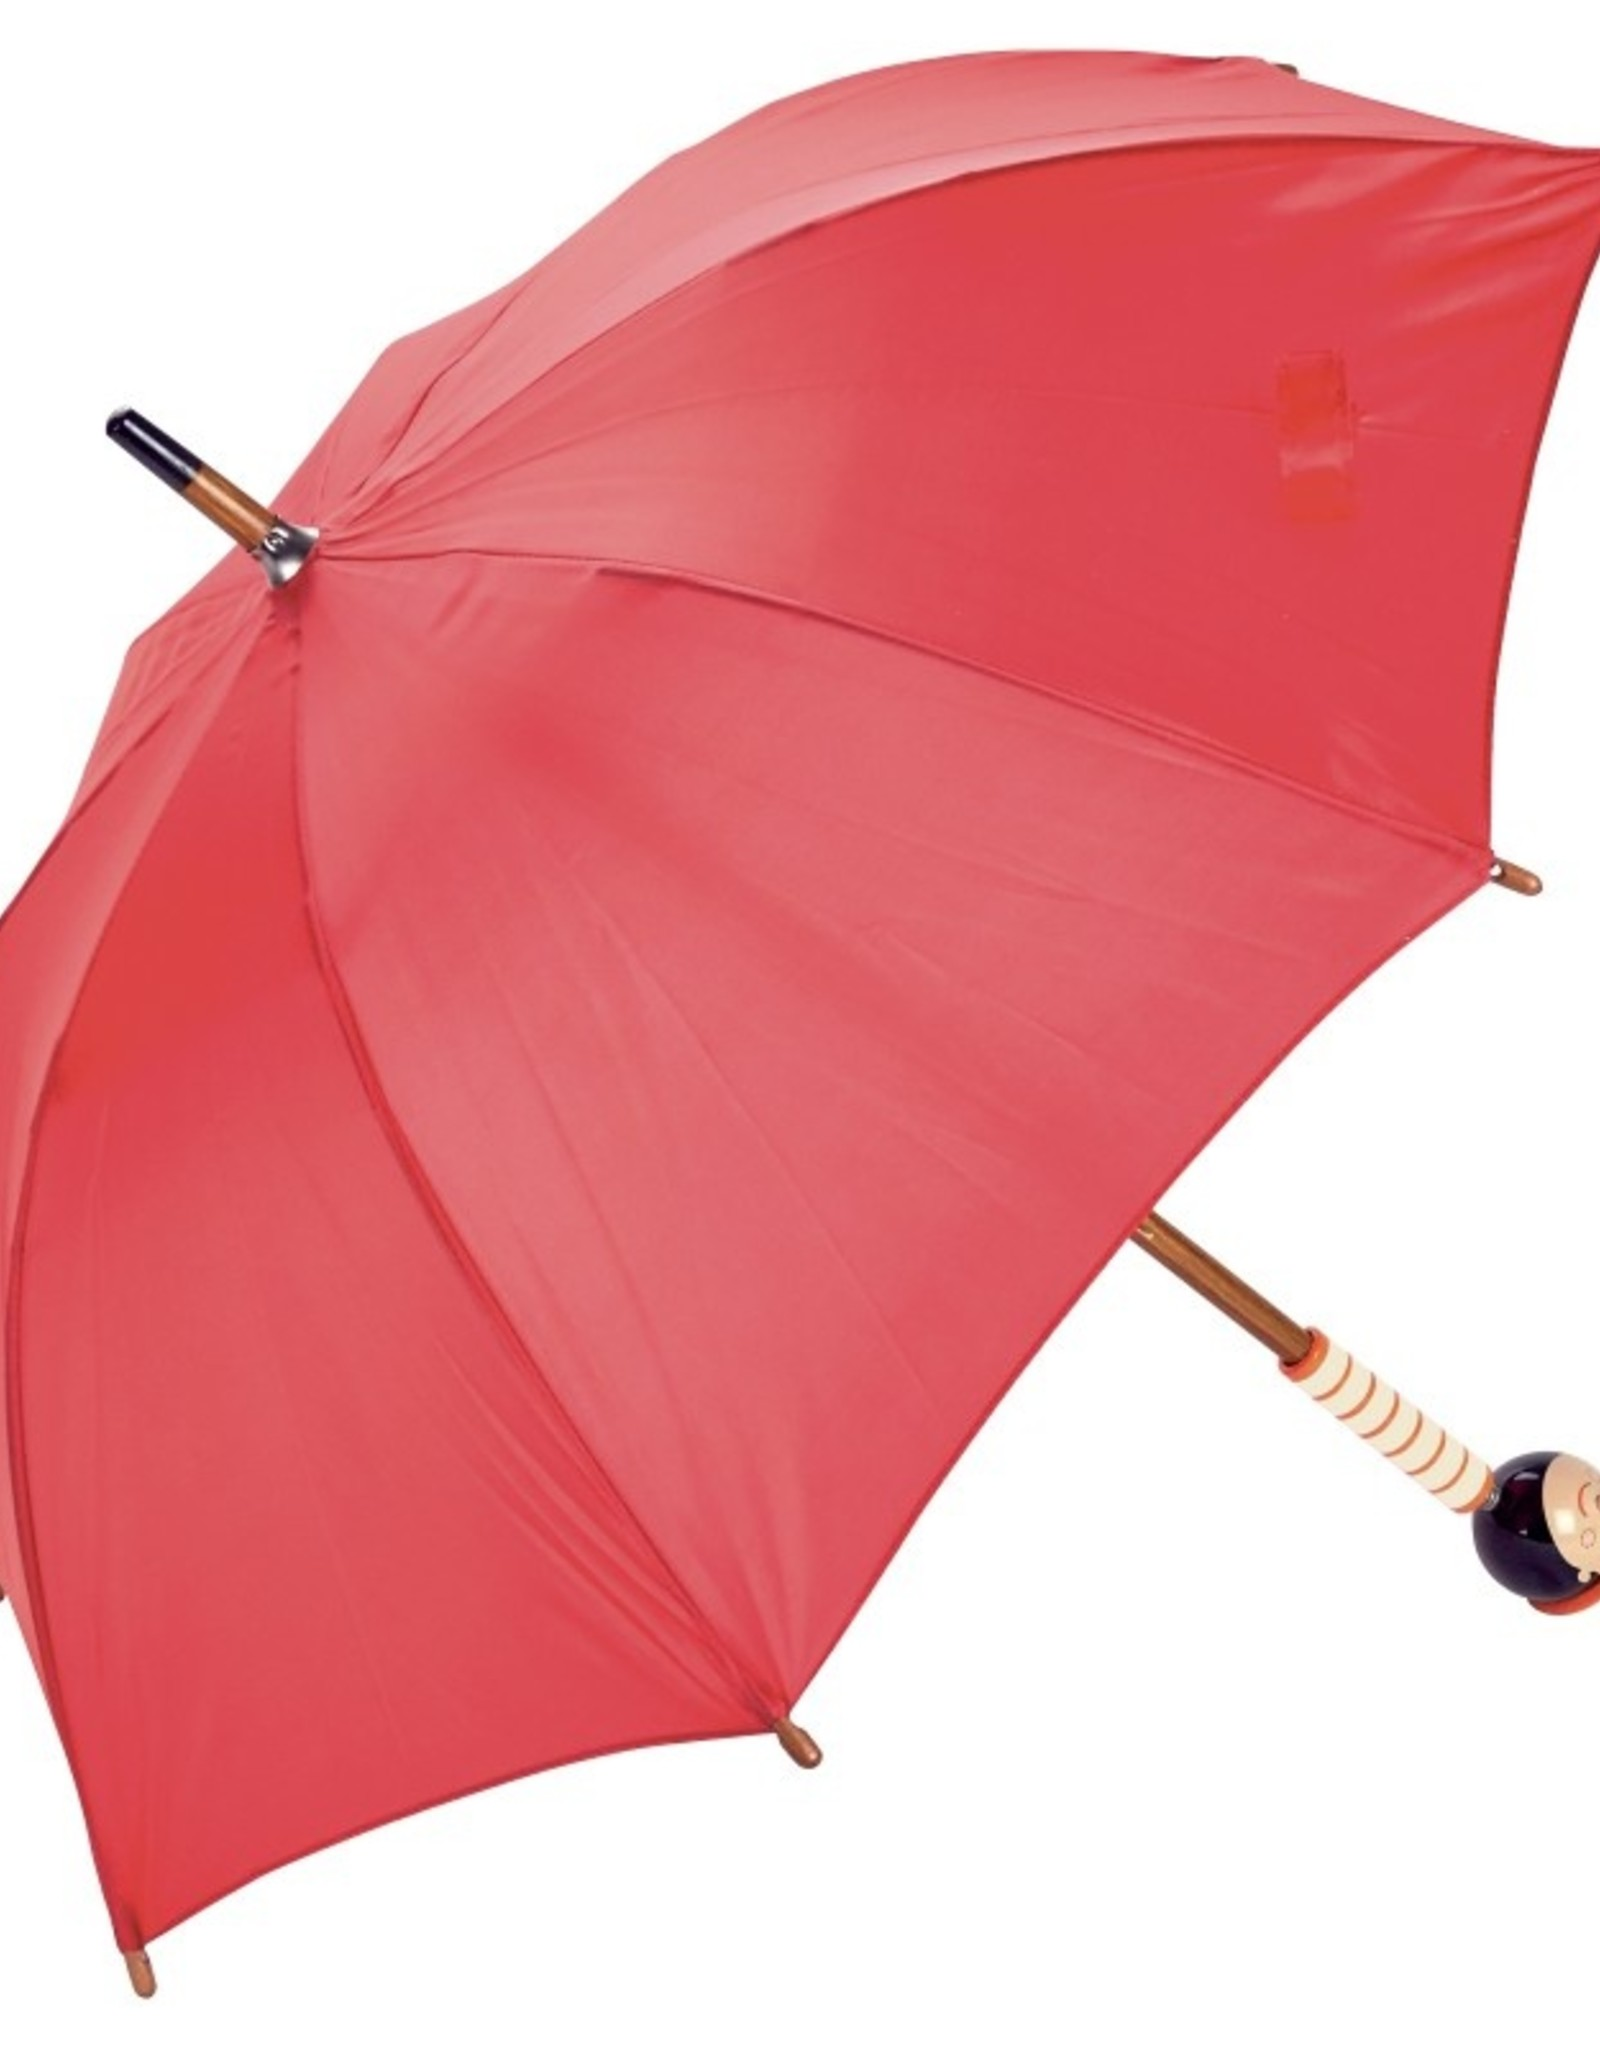 Vilac Pinocchio Umbrella